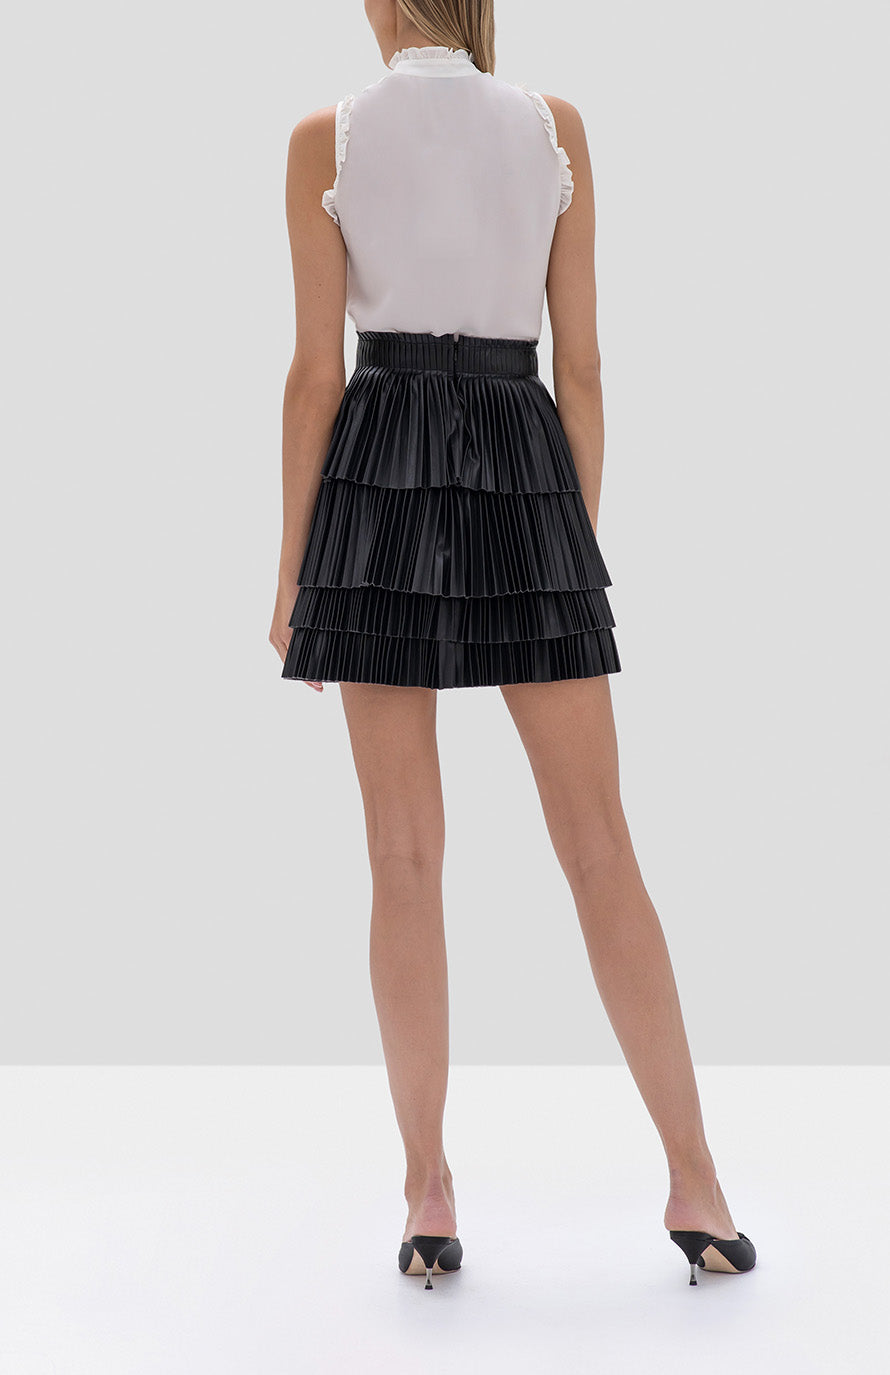 lois top off white, briana skirt black - Rear View